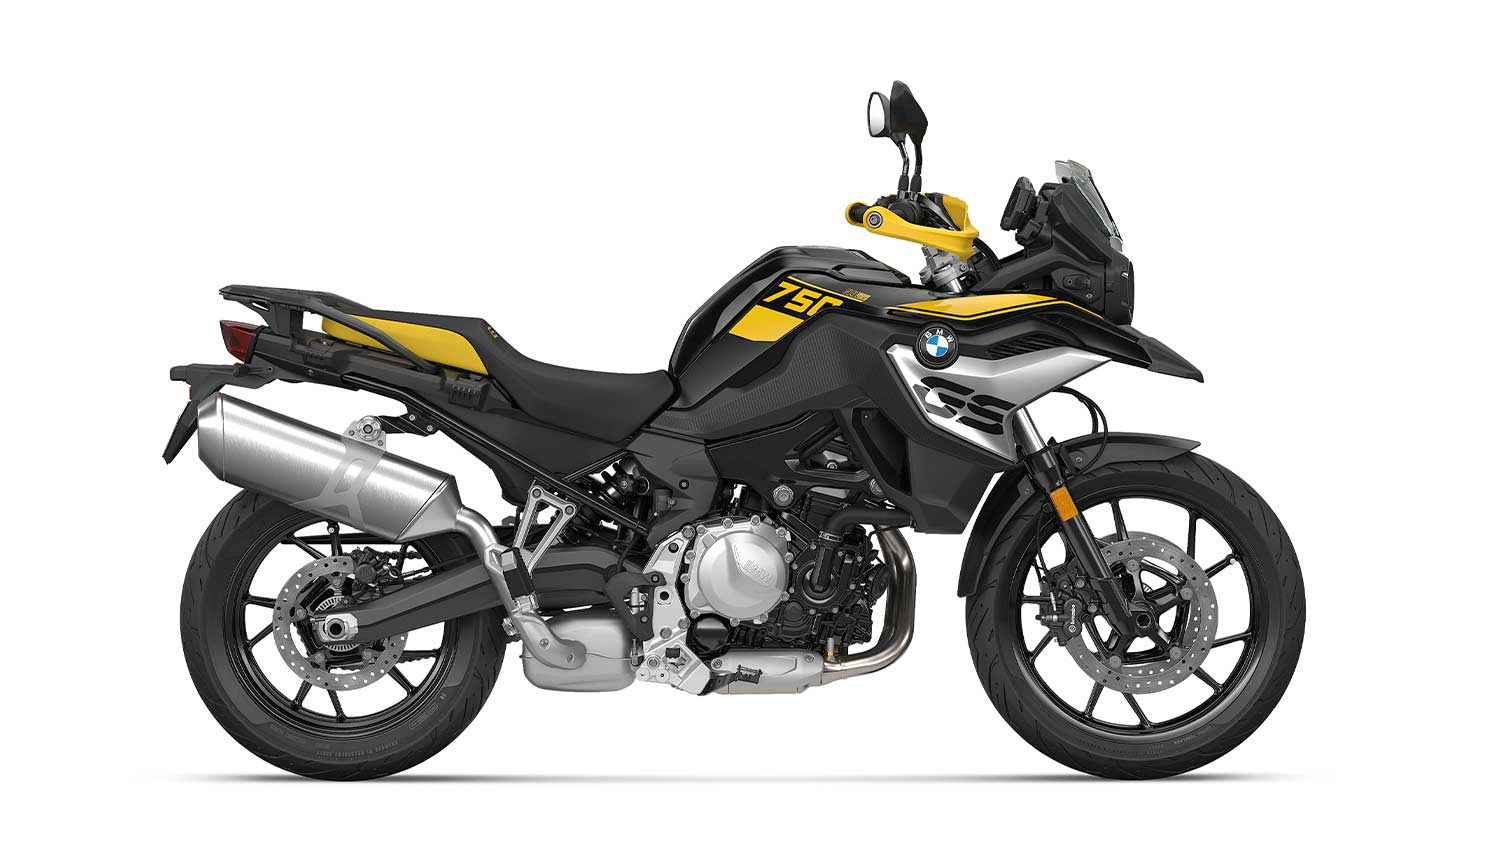 F 750 GS Edition 40 Years GS